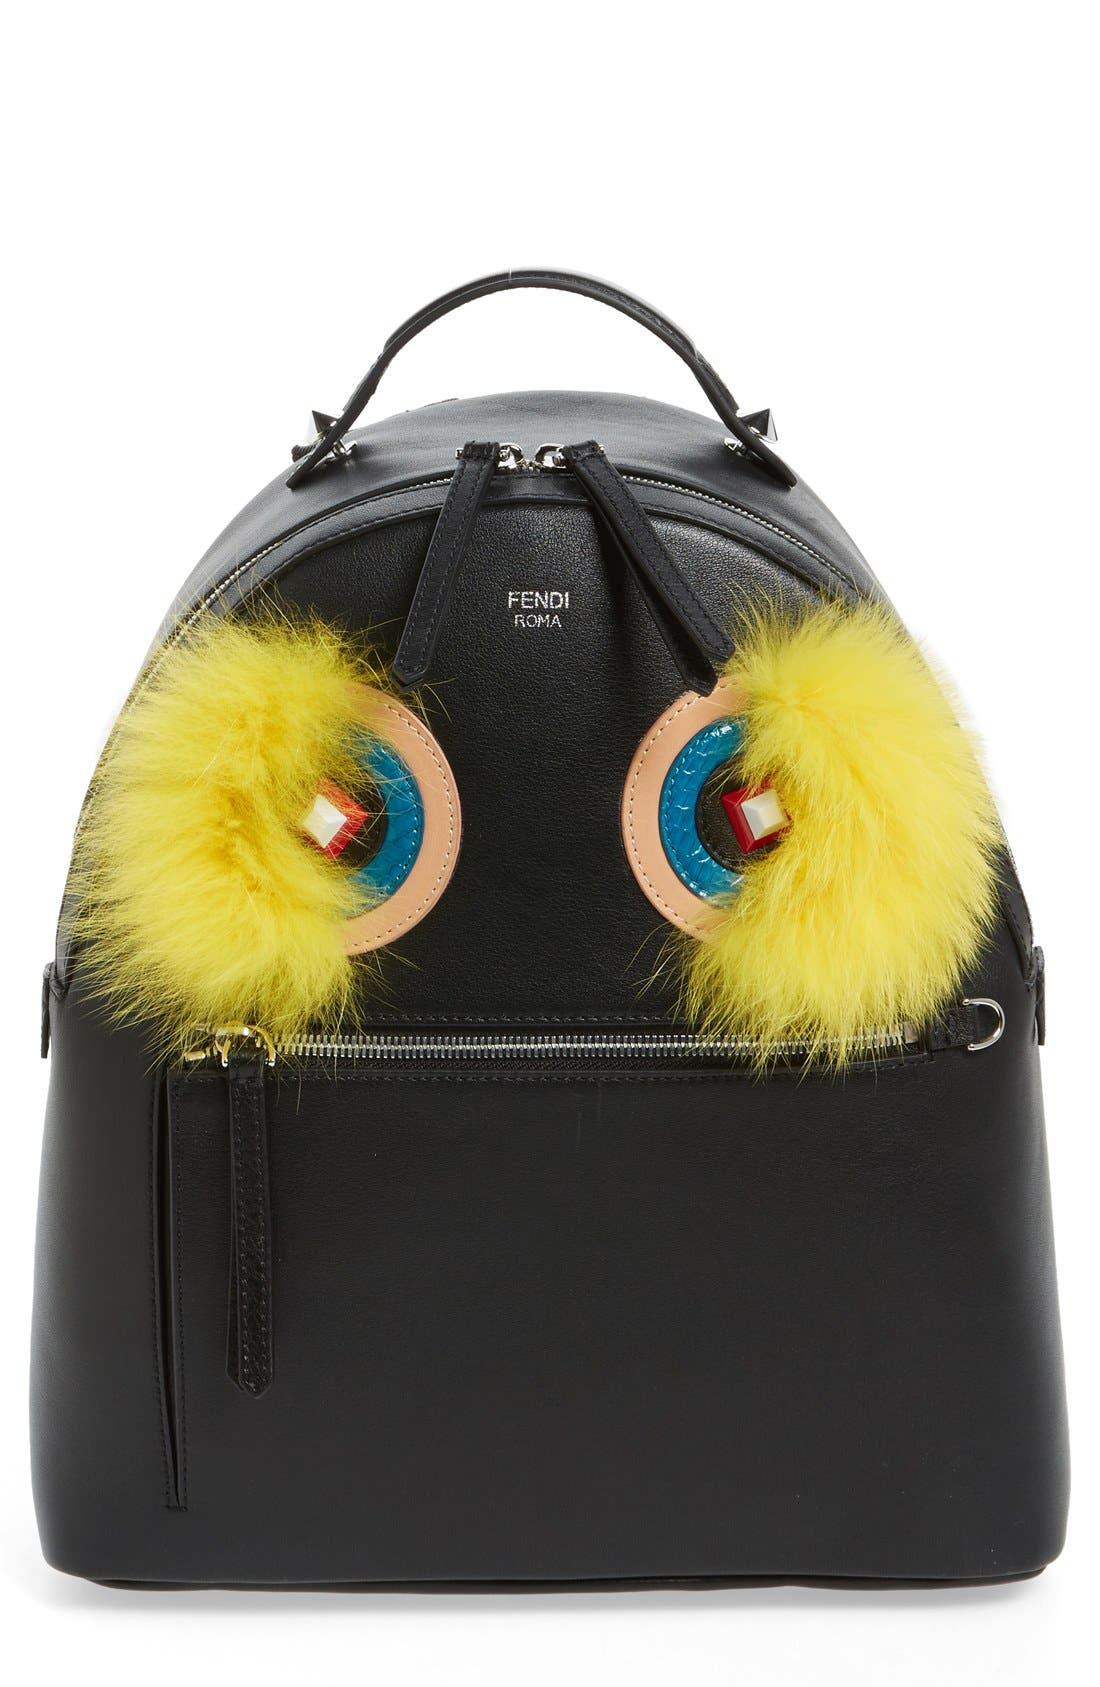 Main Image - Fendi 'Monster' Leather Backpack with Genuine Fox Fur & Snakeskin Trim